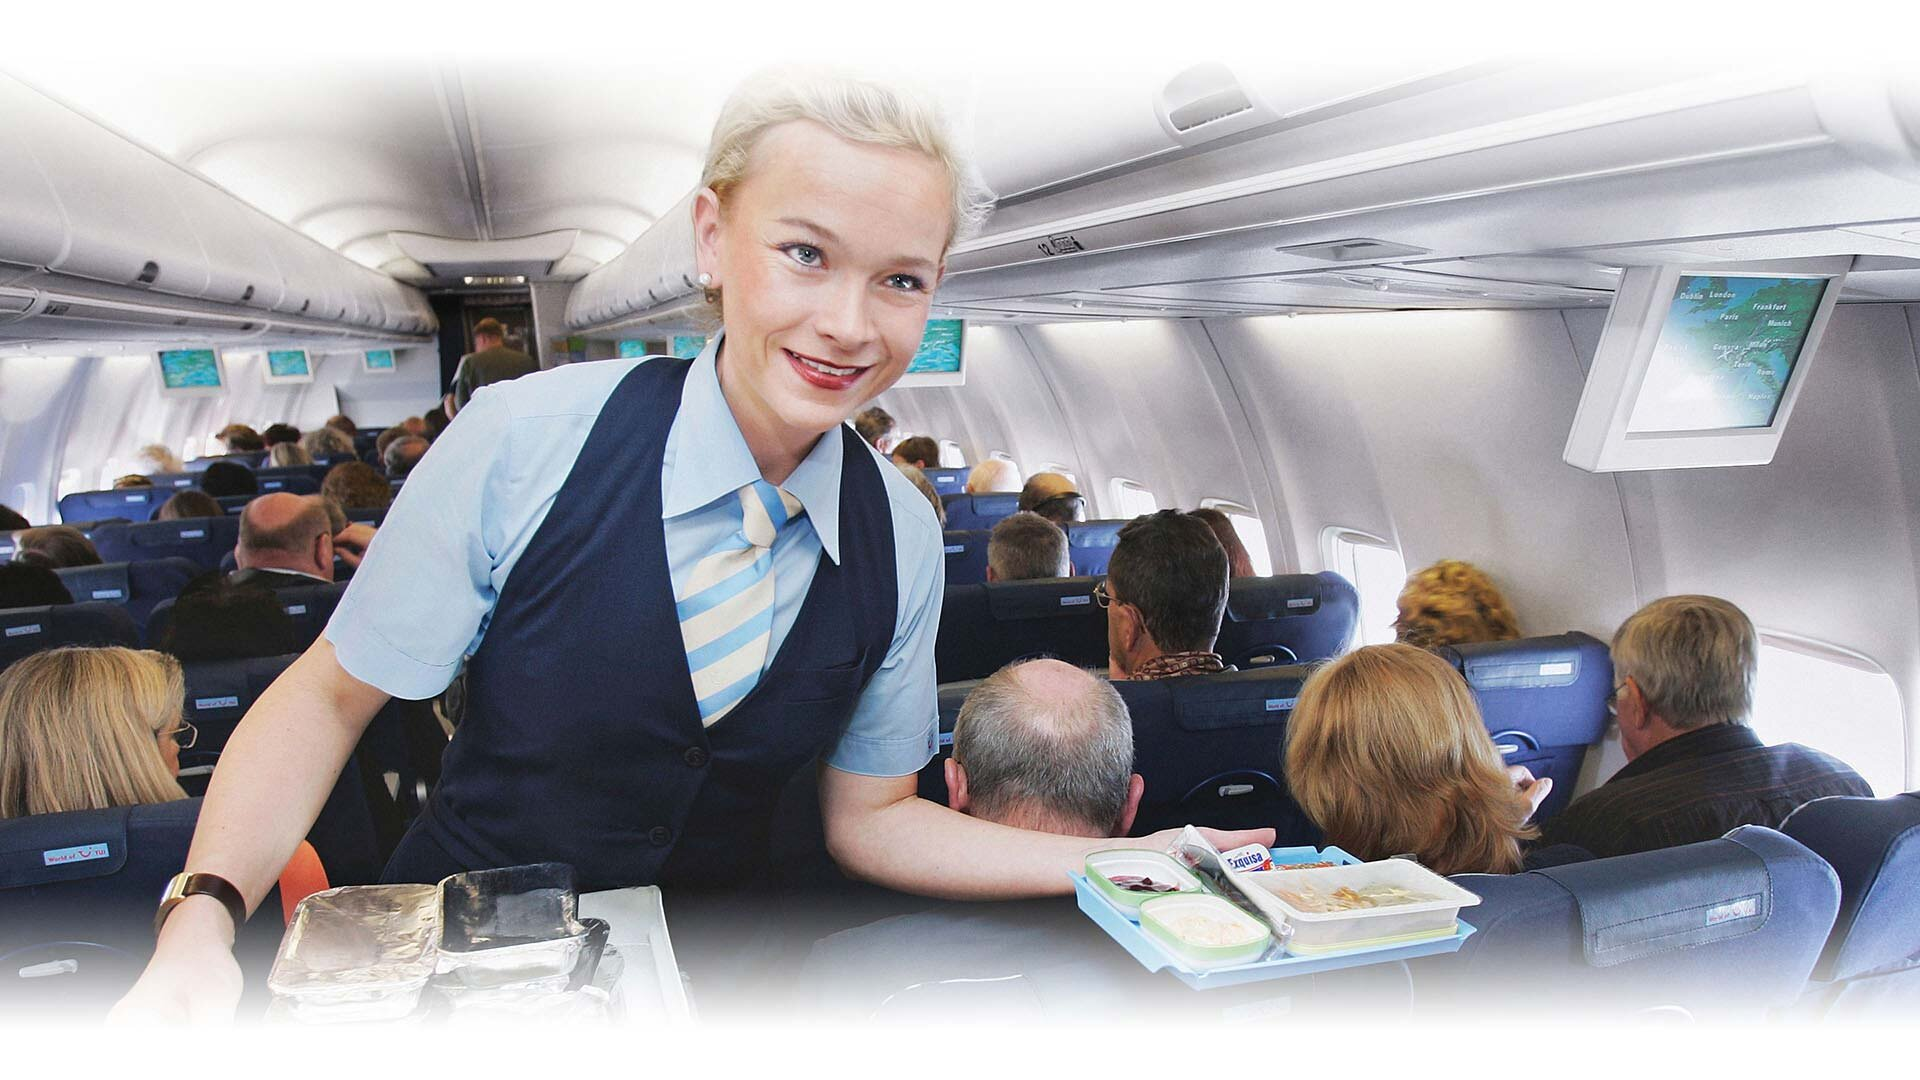 food Distribution - Inflight catering